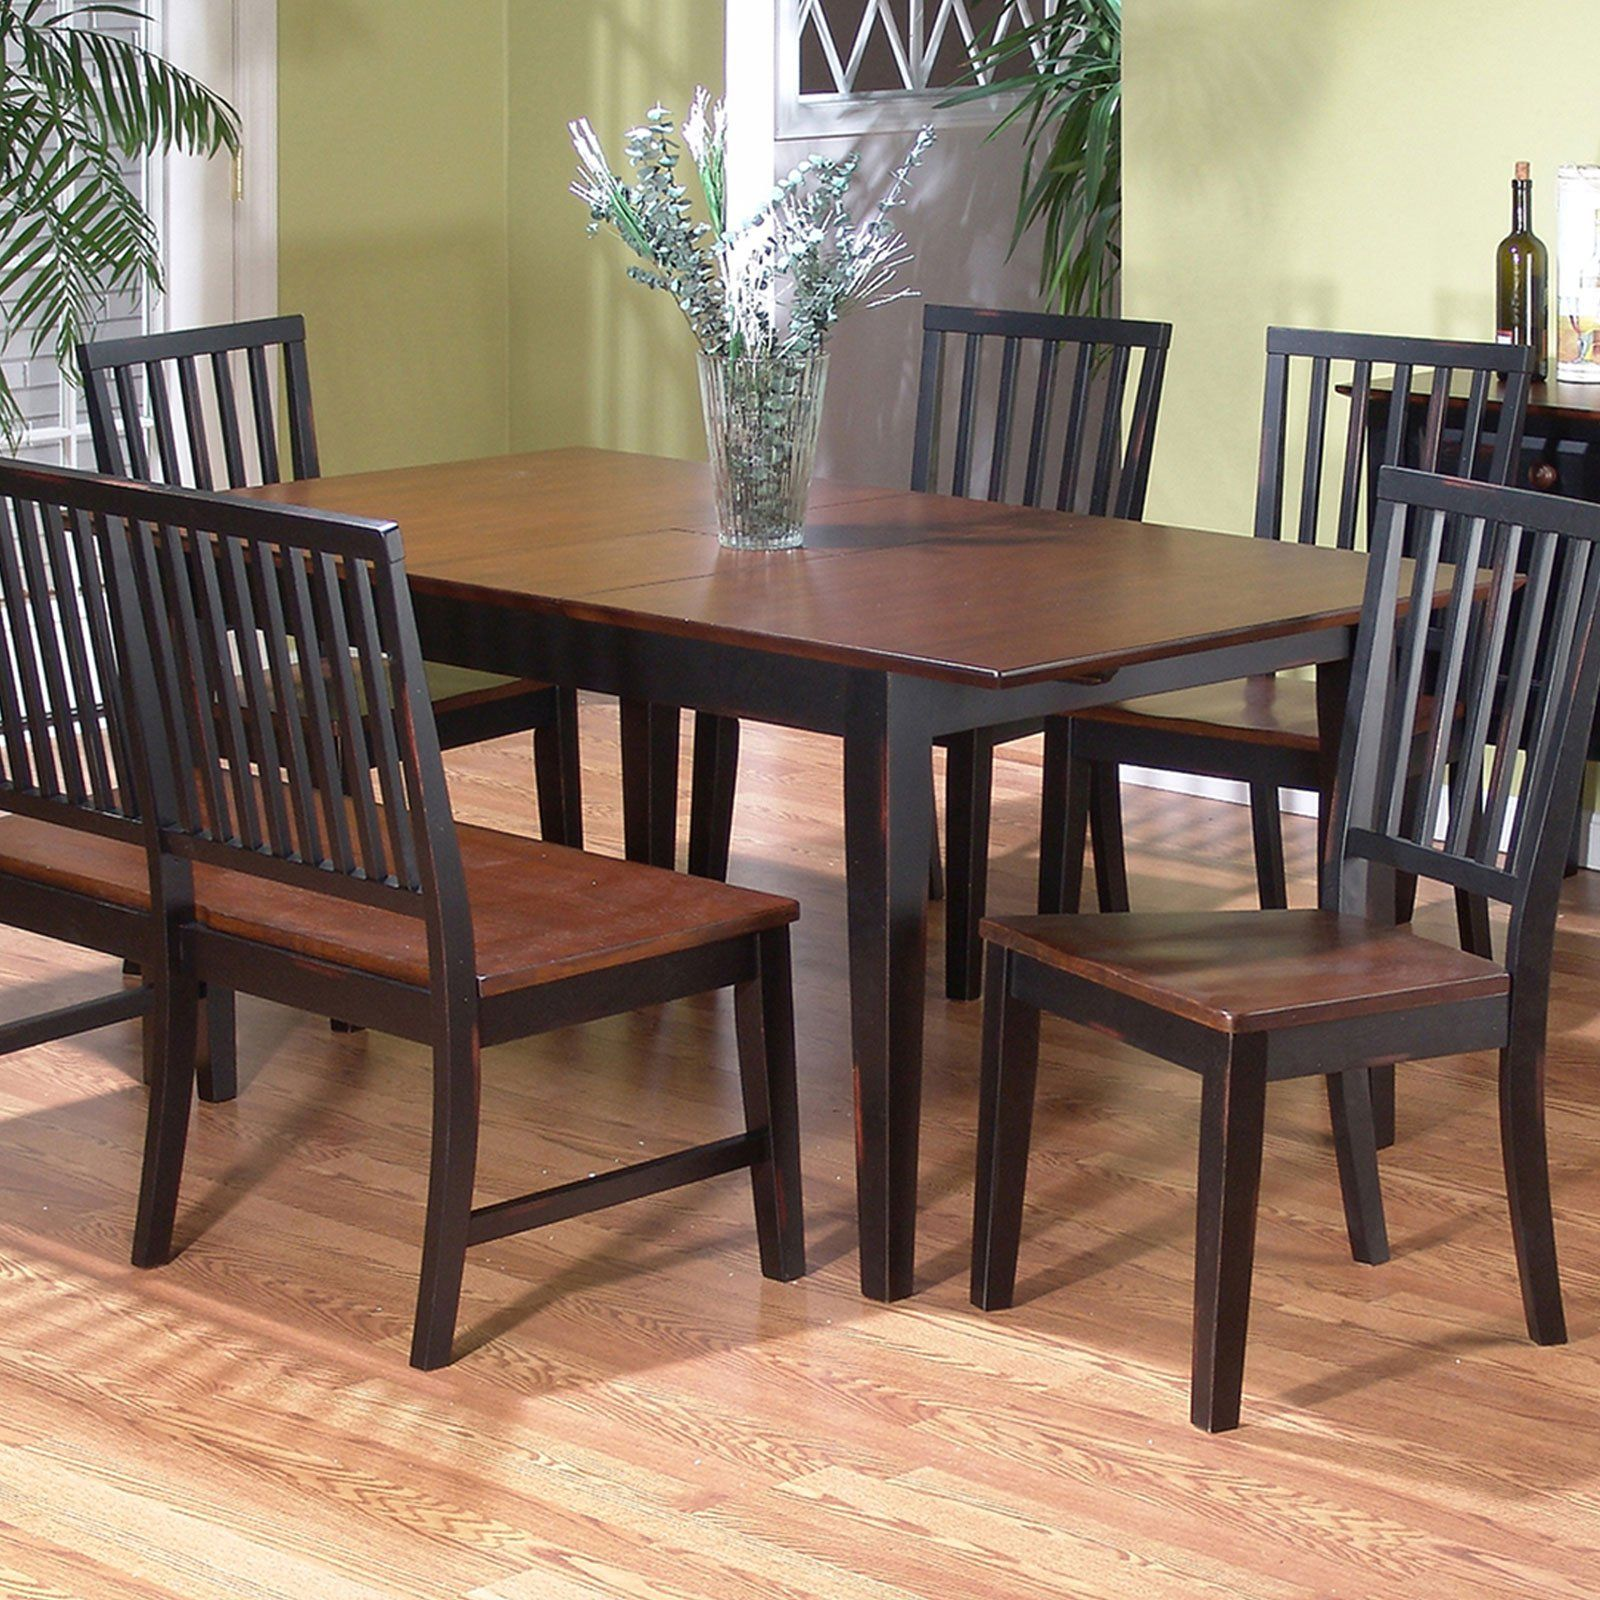 Dining Room Table Bench Inspirations Solid Wood Black Gallery Furniture Rectangle Brown Glossy Wooden And With Back On Cream Laminated Floor Lianglihome